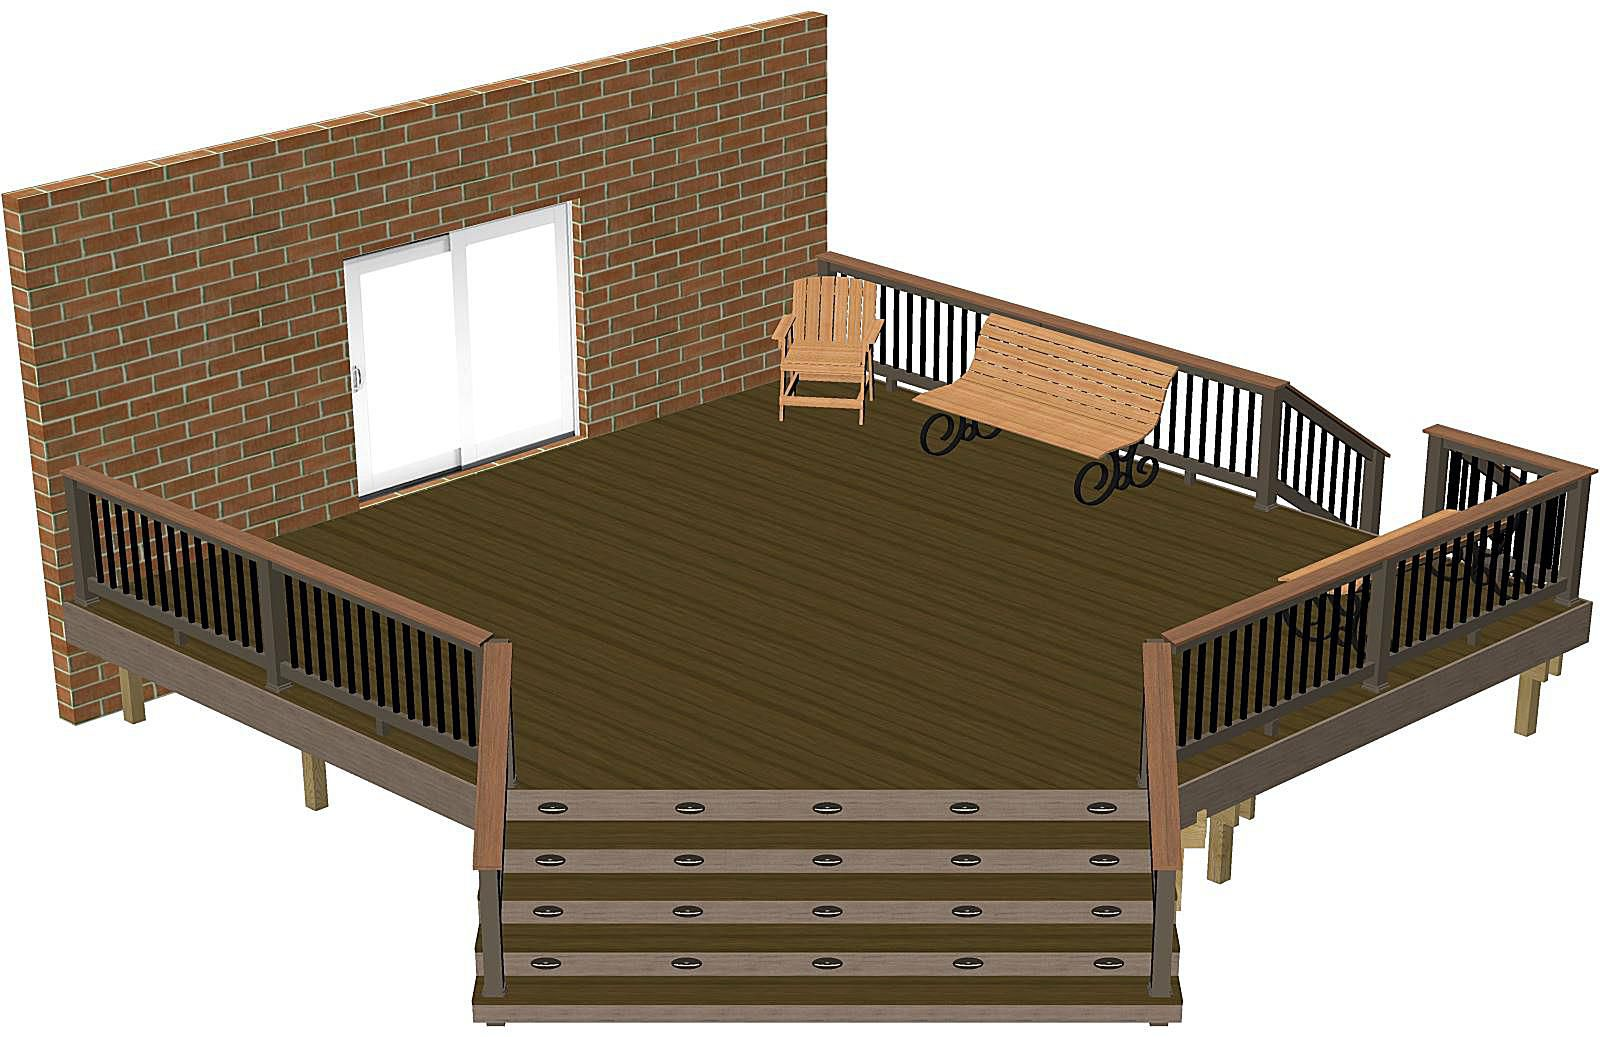 Get Free Do-It-Yourself Deck Plans